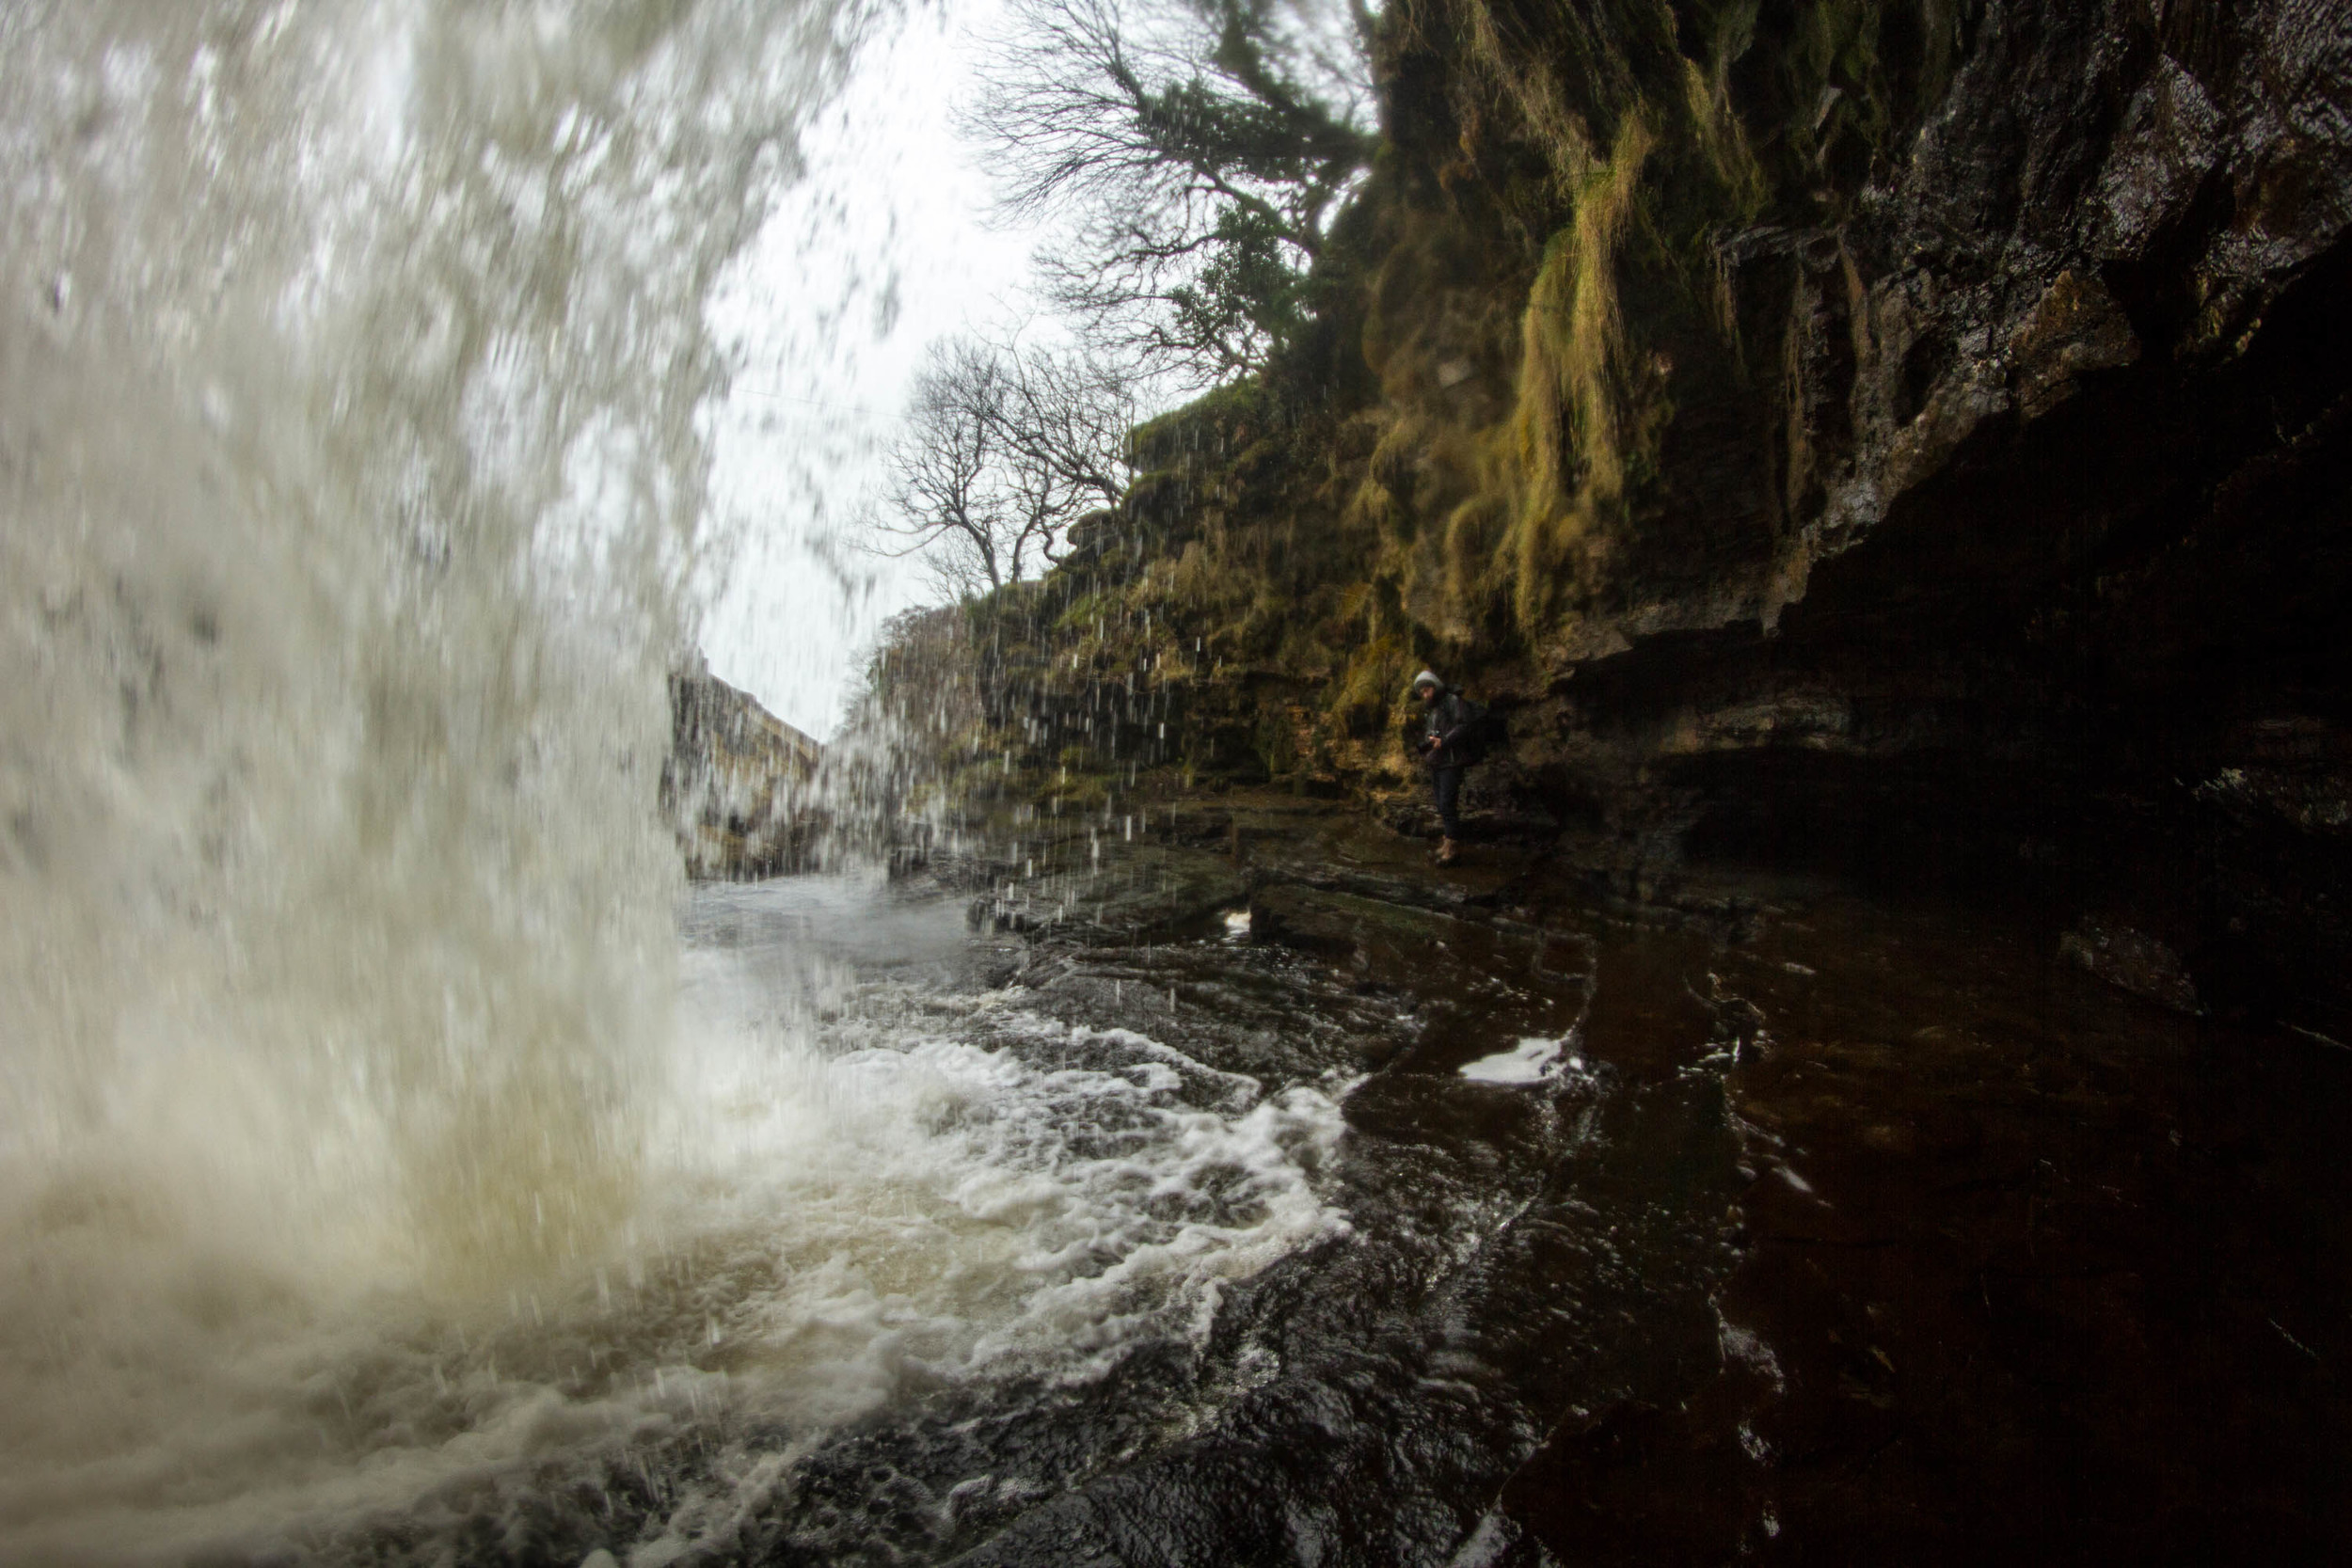 Under the falls